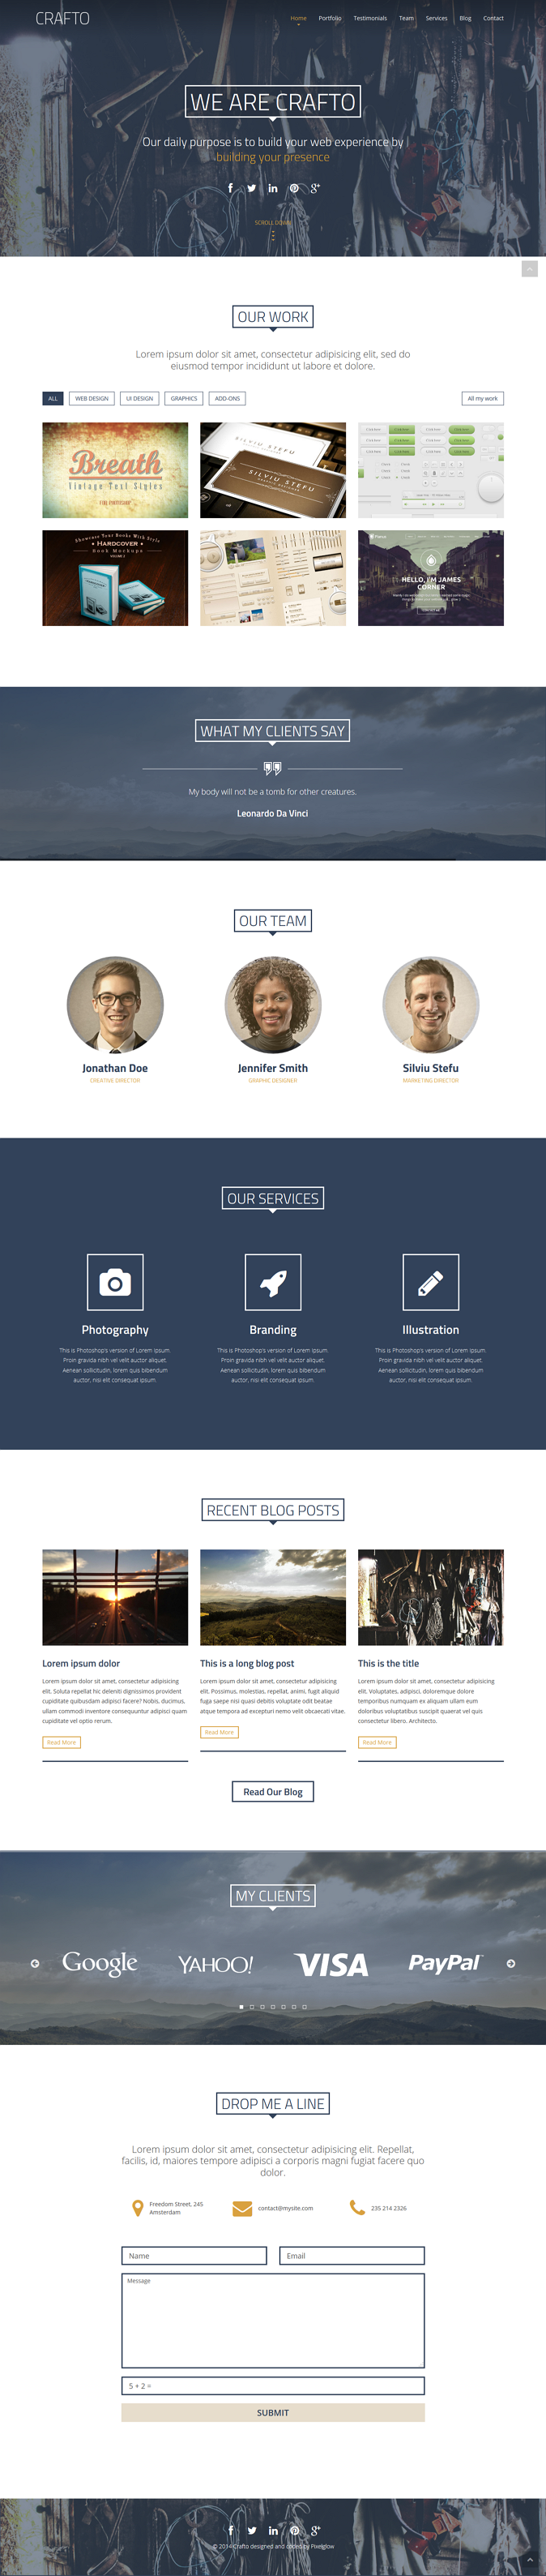 Crafto HTML is a responsive template built on Twitter Bootstrap 3 framework. It's a one-pa ...